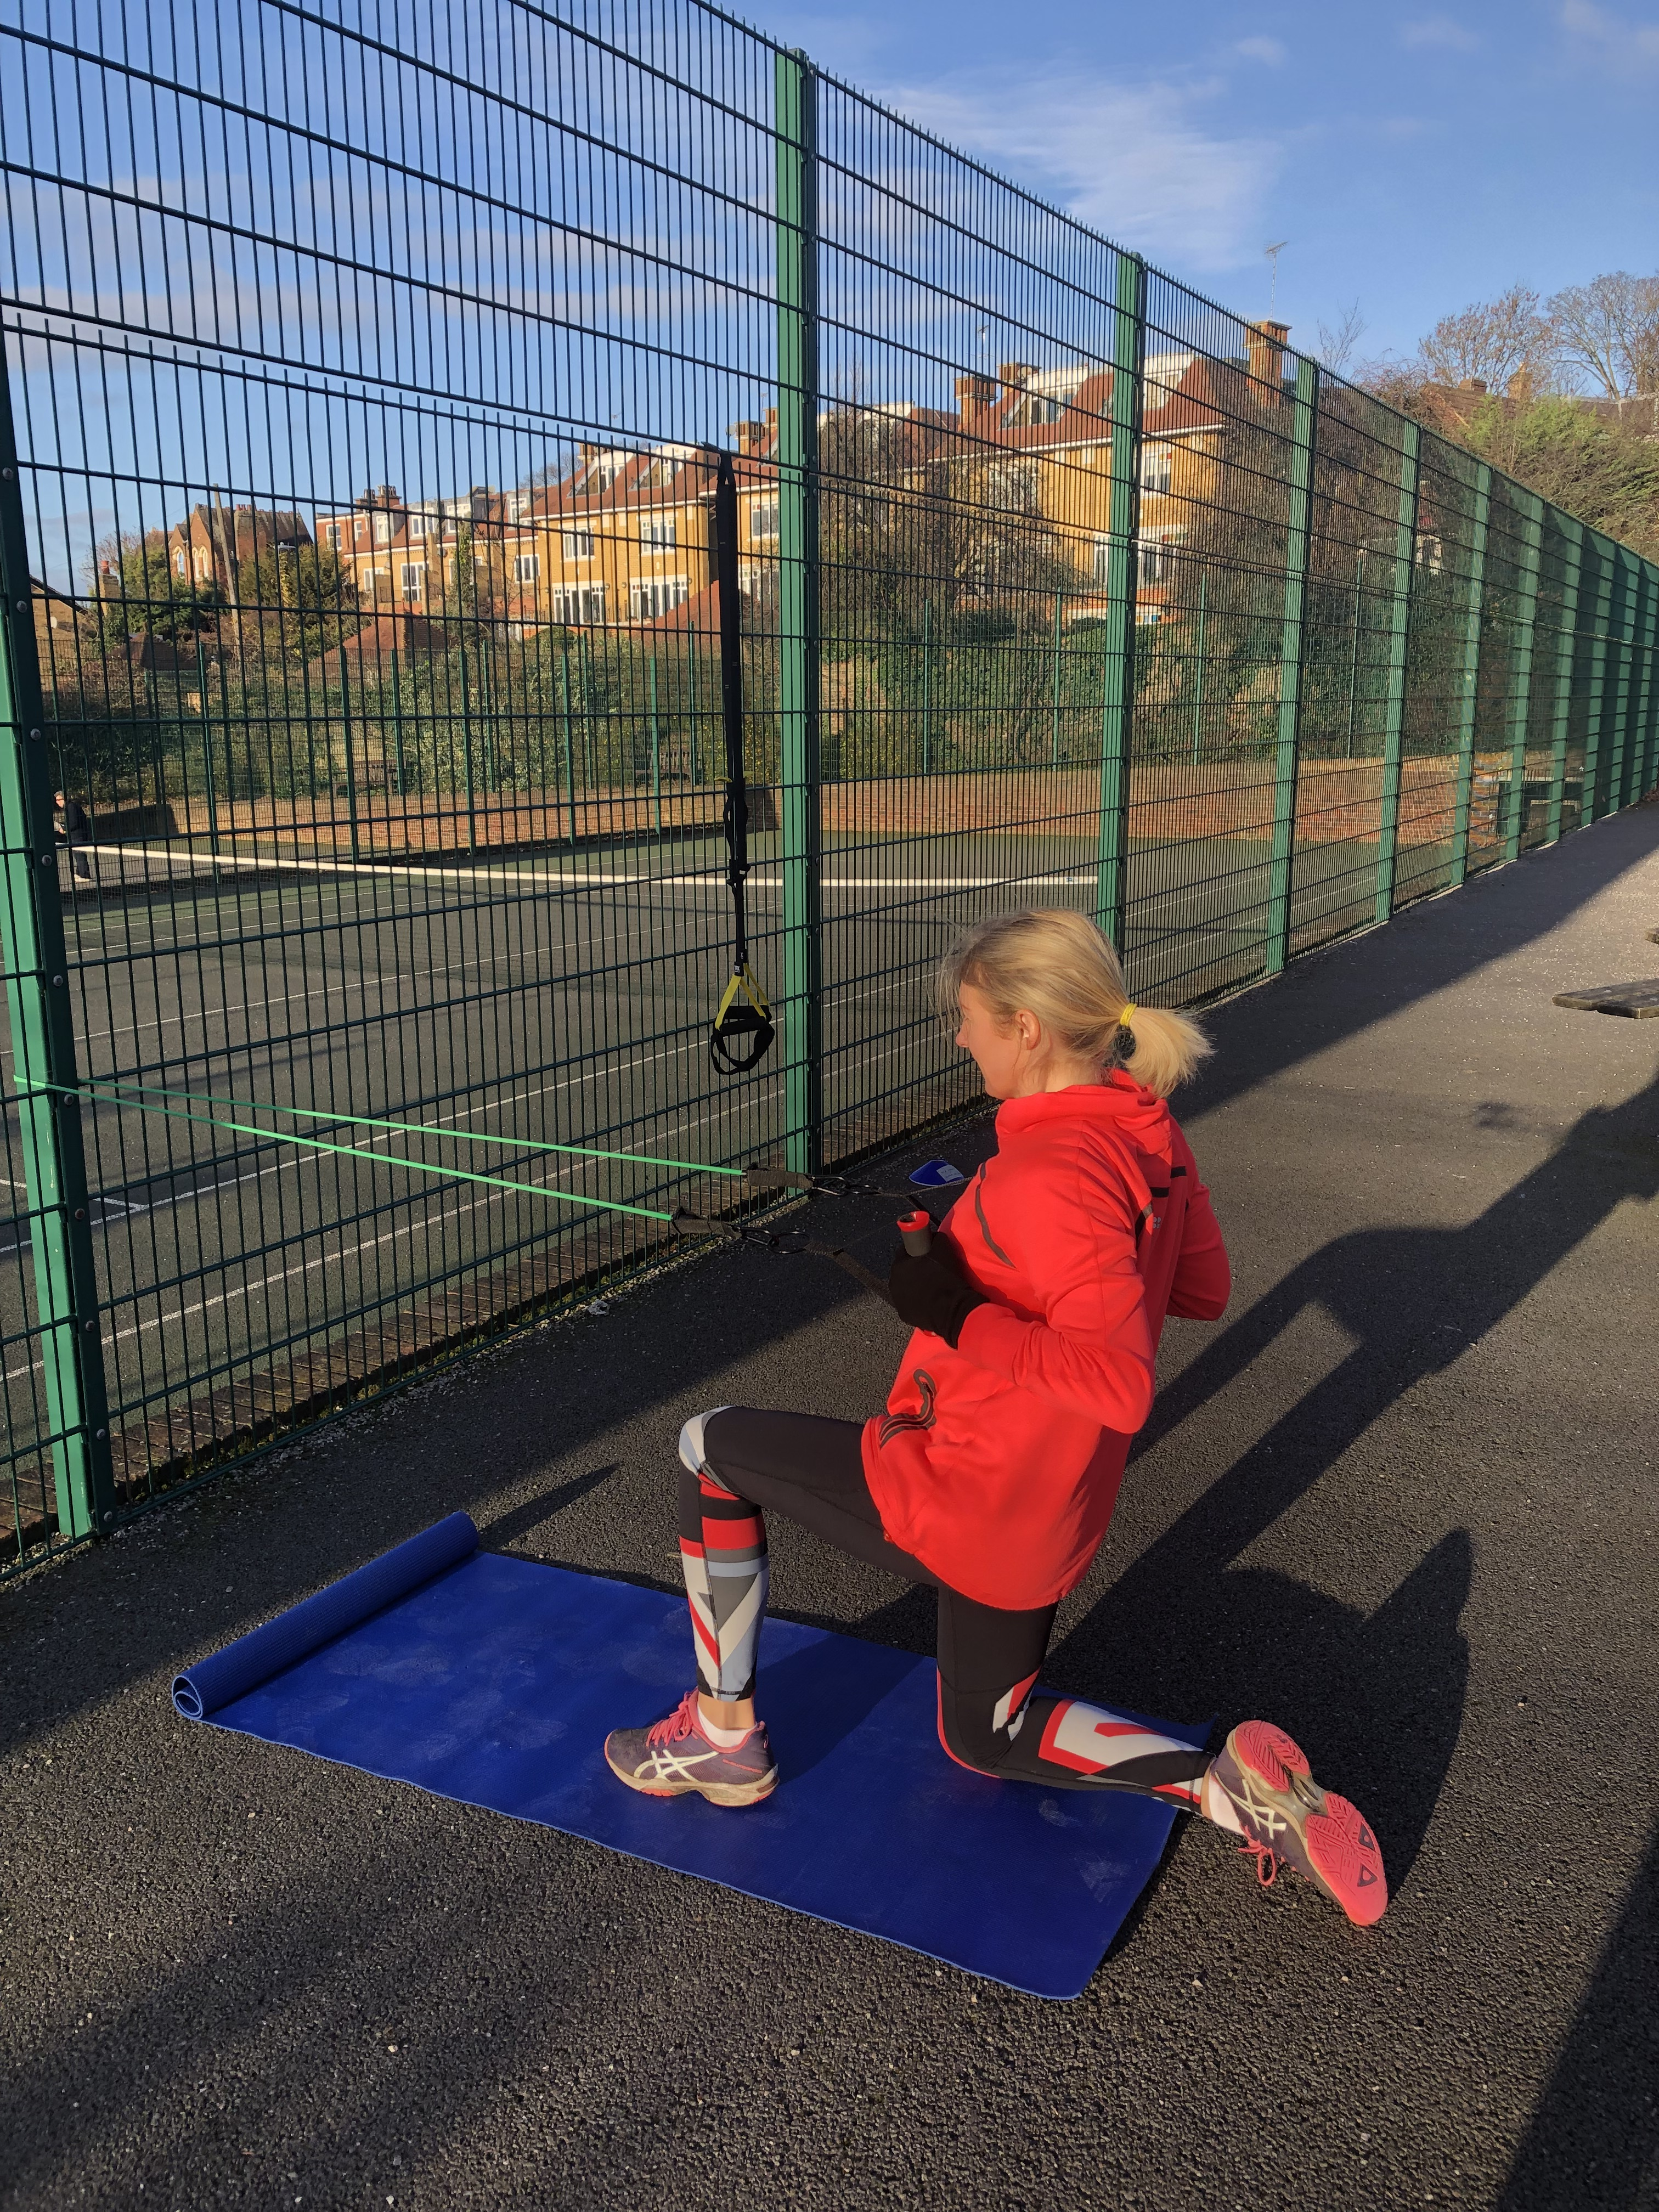 Resistance band exercise for posture